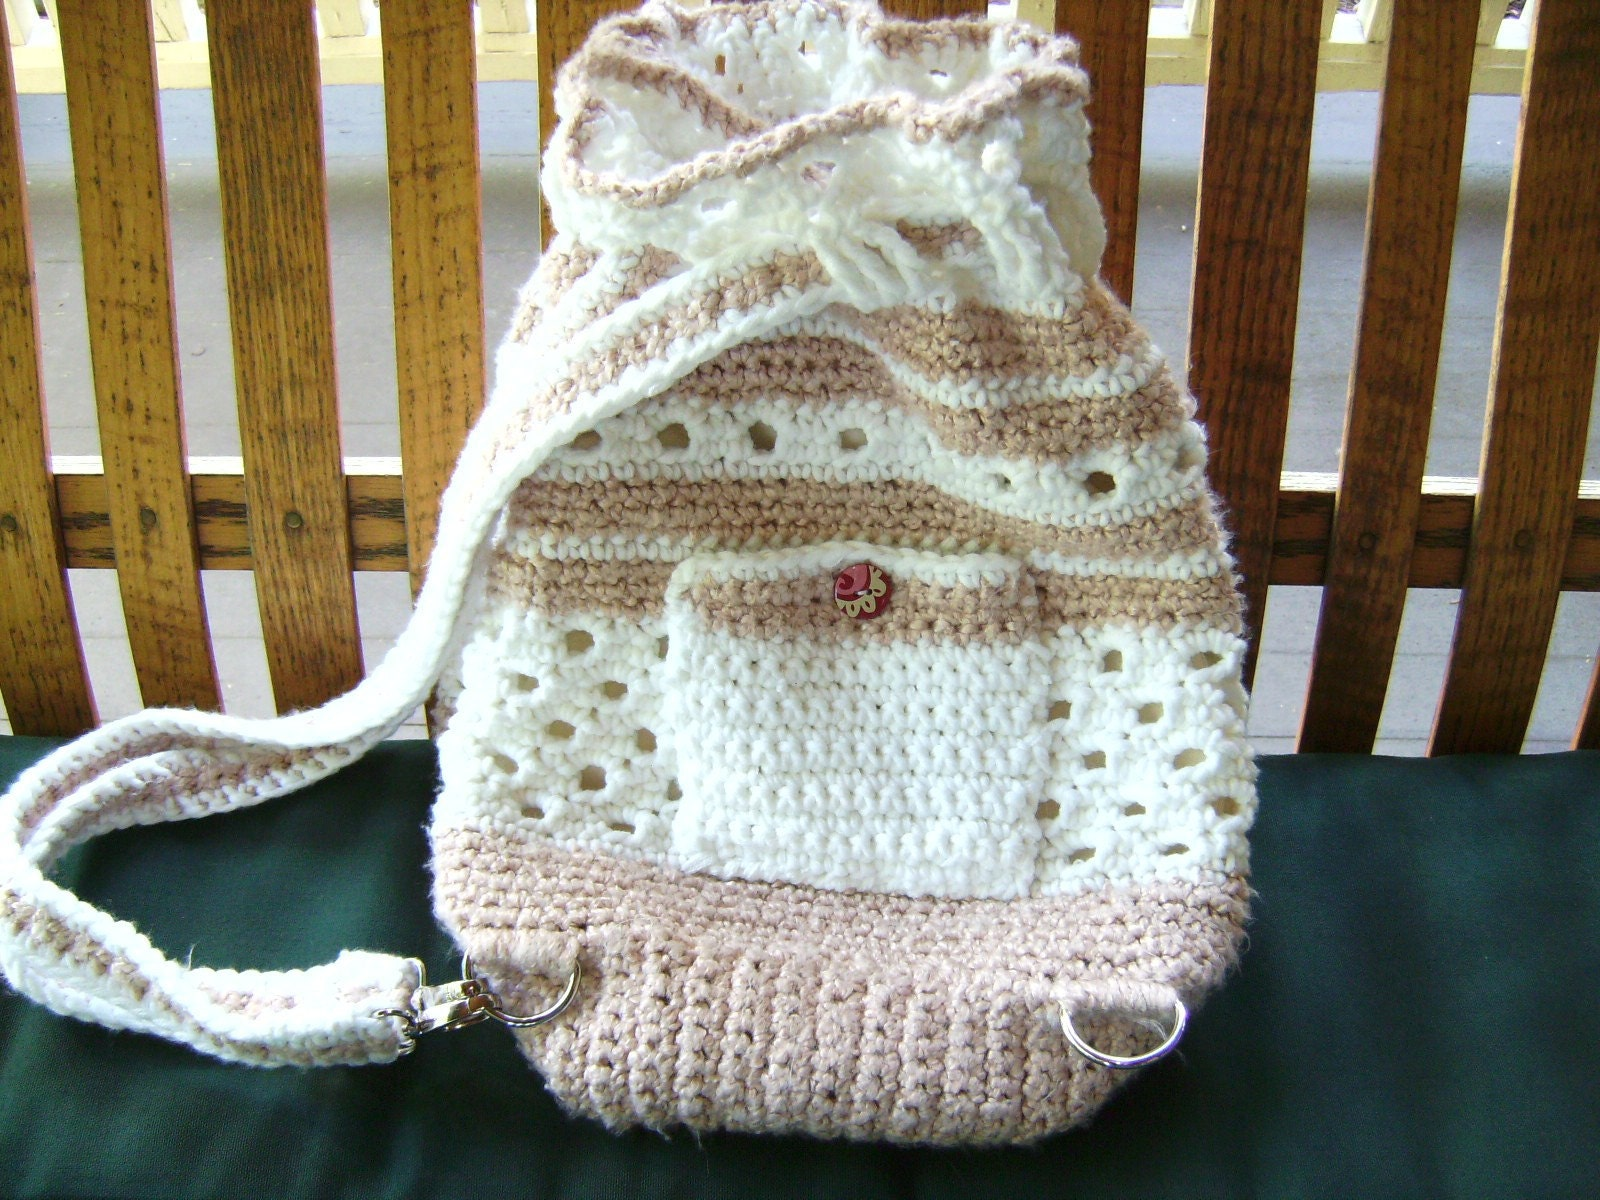 Crochet Backpack : Crochet Hobo Backpack With Convertible by InterferenceChannel